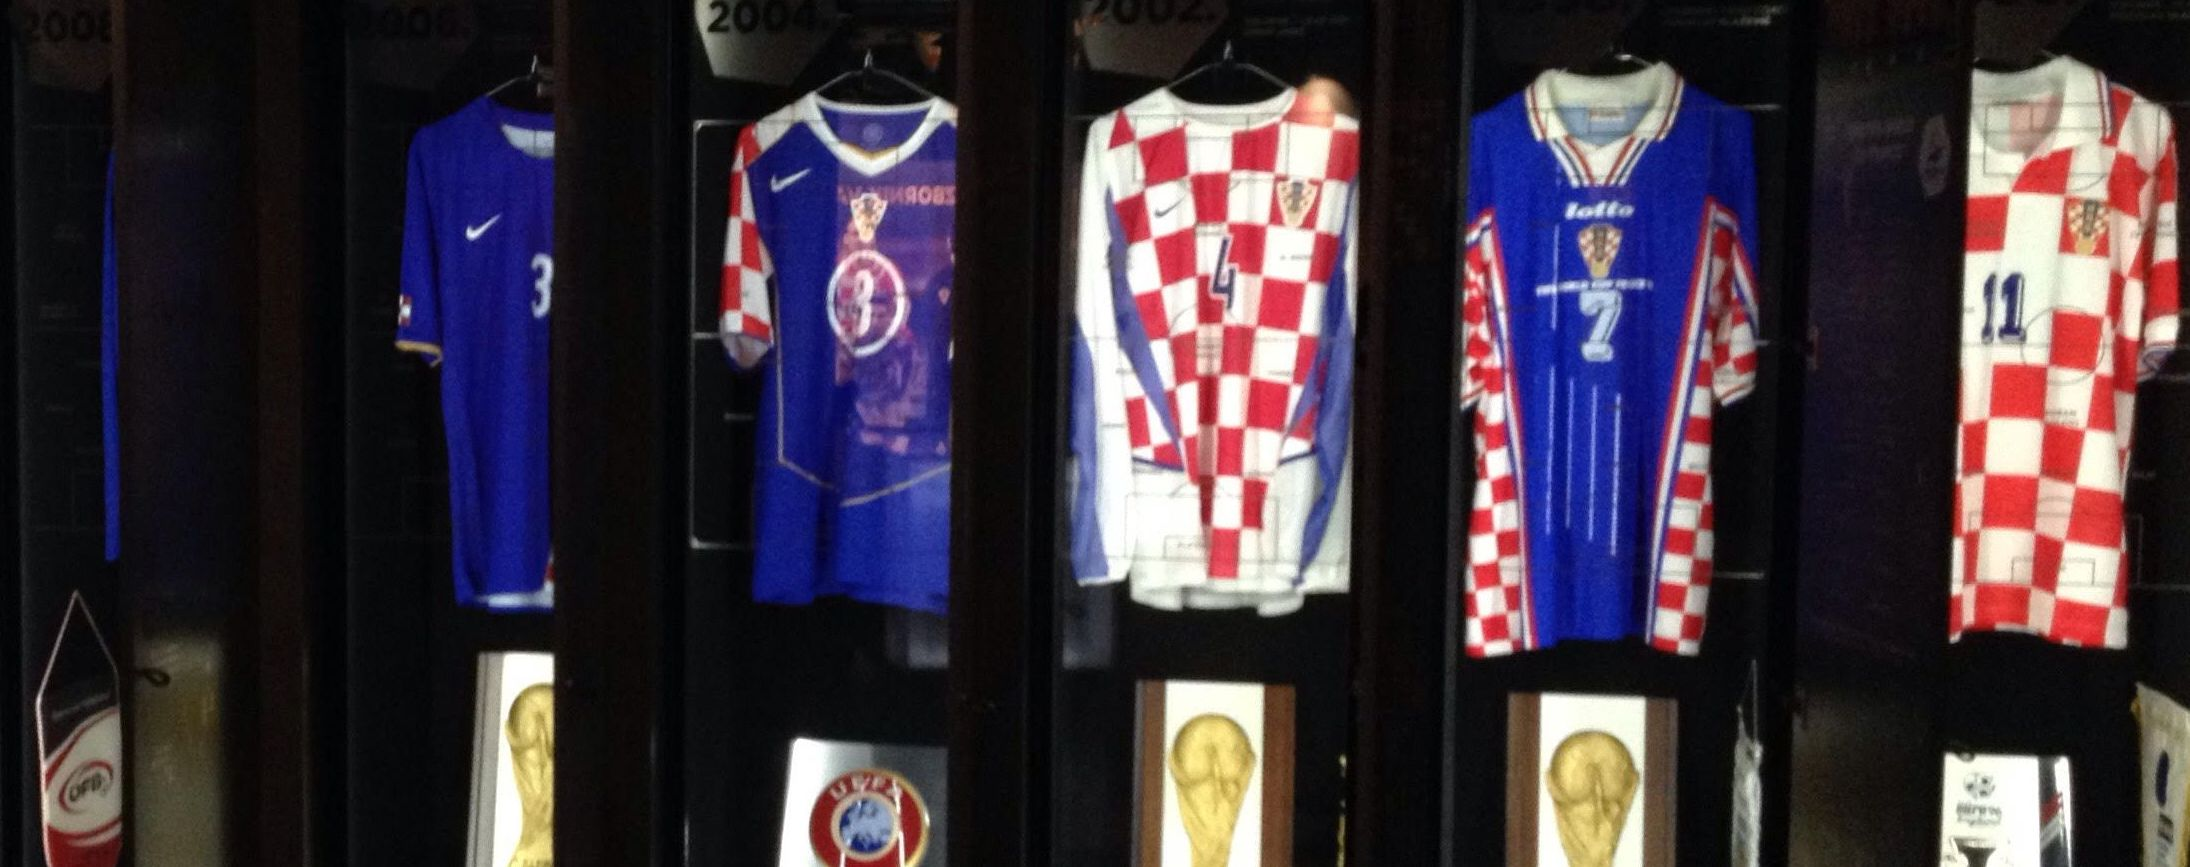 [PHOTOS] Photo Tour of the Croatian Football 'Museum'